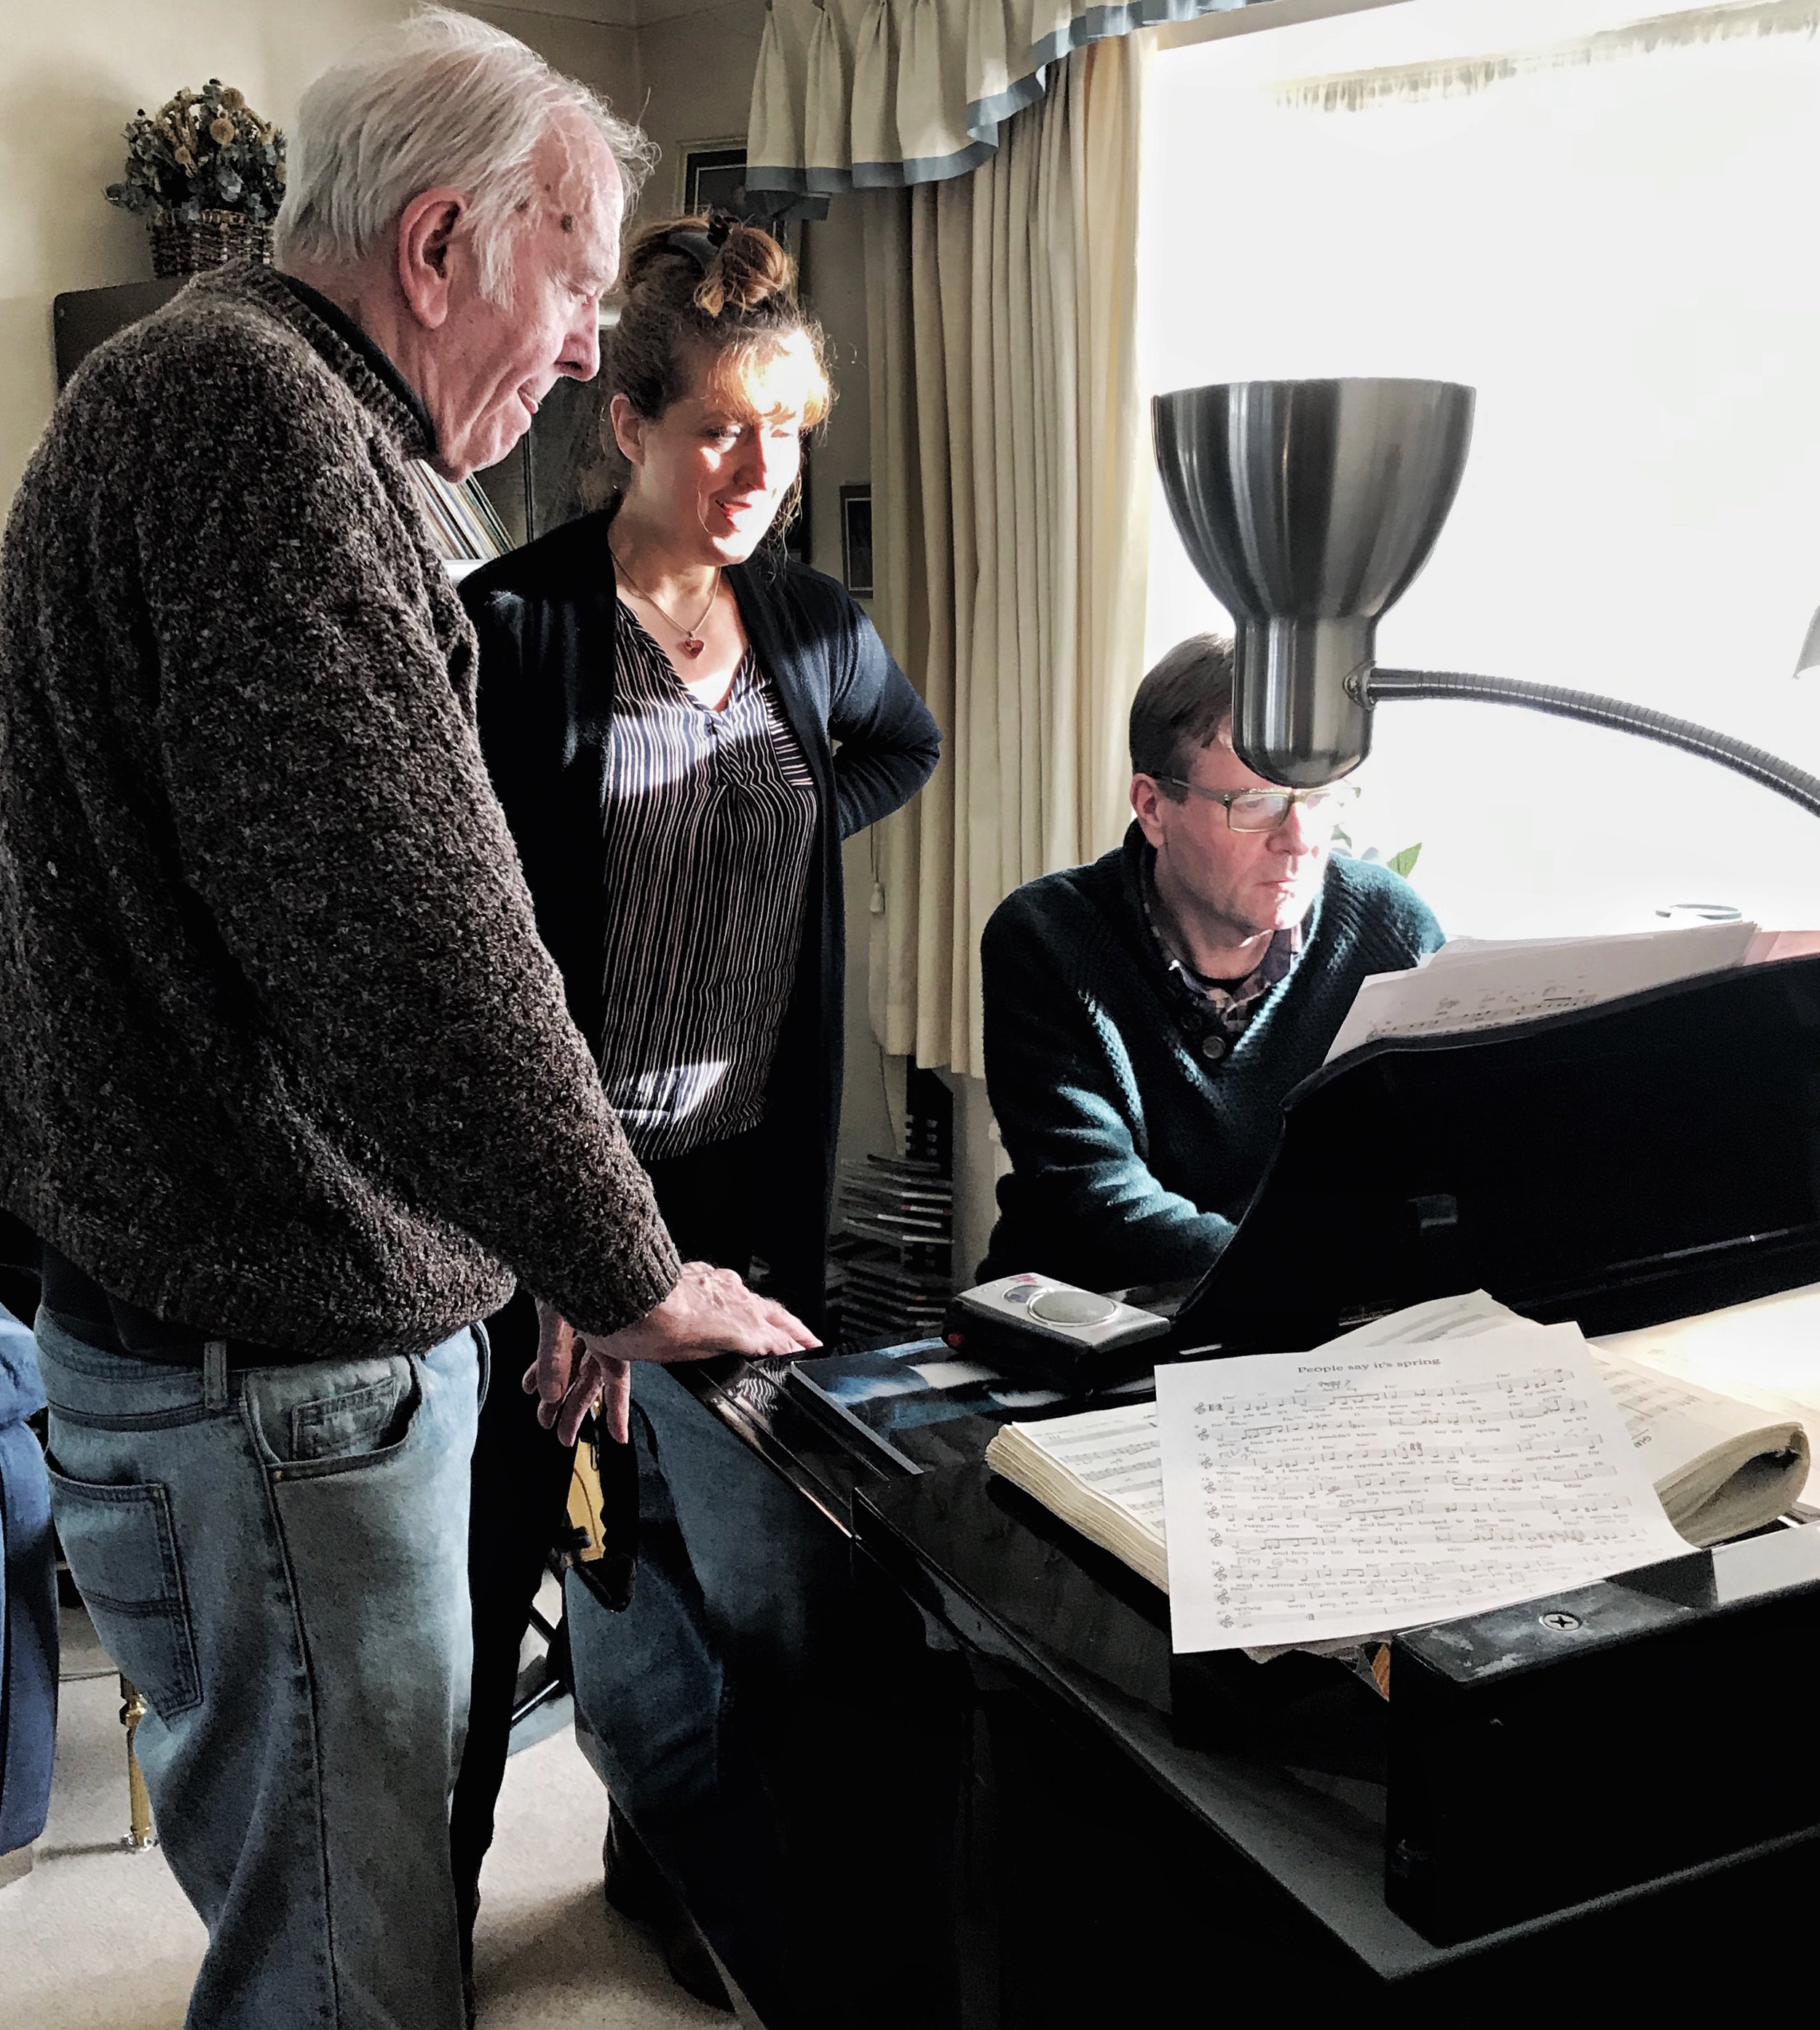 """Rehearsing new songs for the """"Duncan Lamont Songbook"""""""" show with Duncan Lamont & Duncan Lamont Jnr - preparations for our trip to Scotland in June! (17/3/19)"""